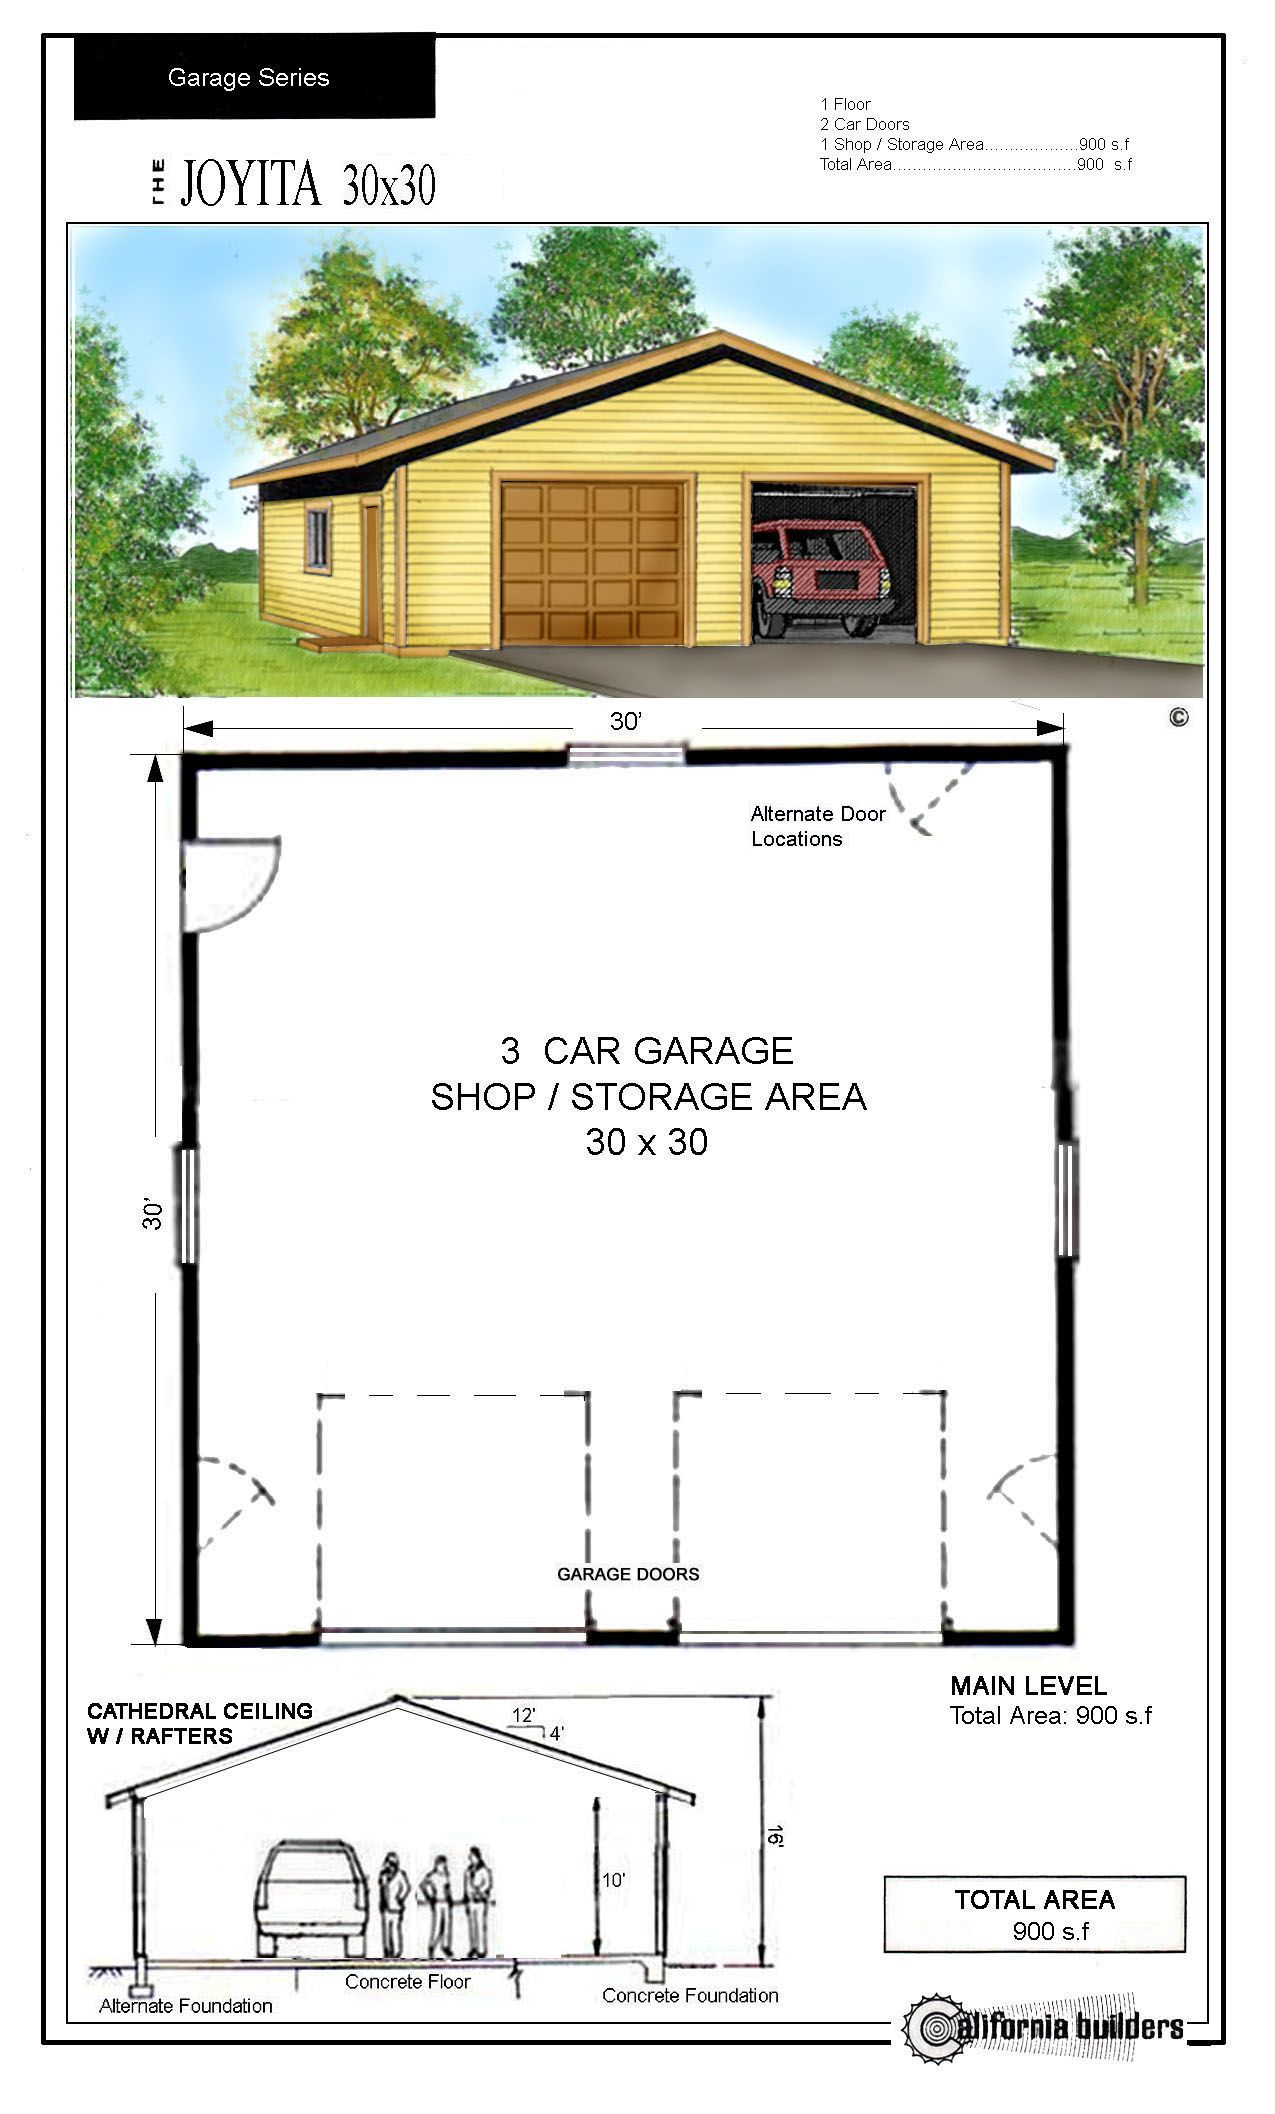 30x30 floor garage plans the laredo 28x39 house for 30x30 garage with apartment